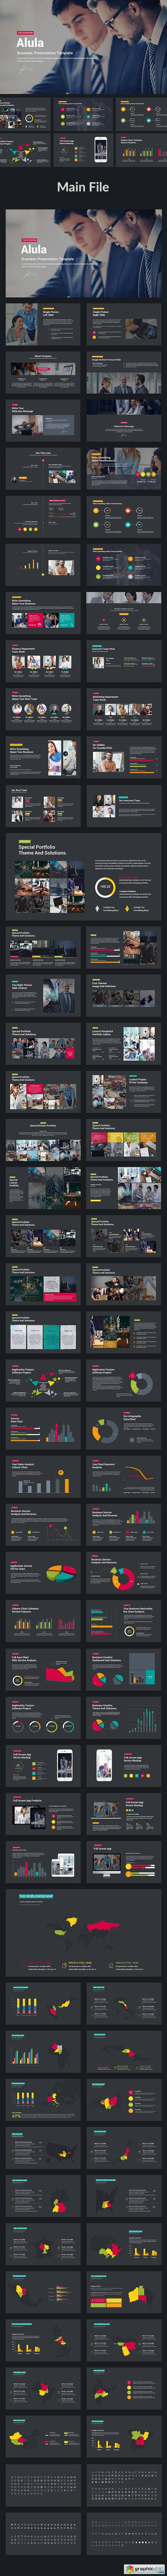 Alula - Business Powerpoint Template